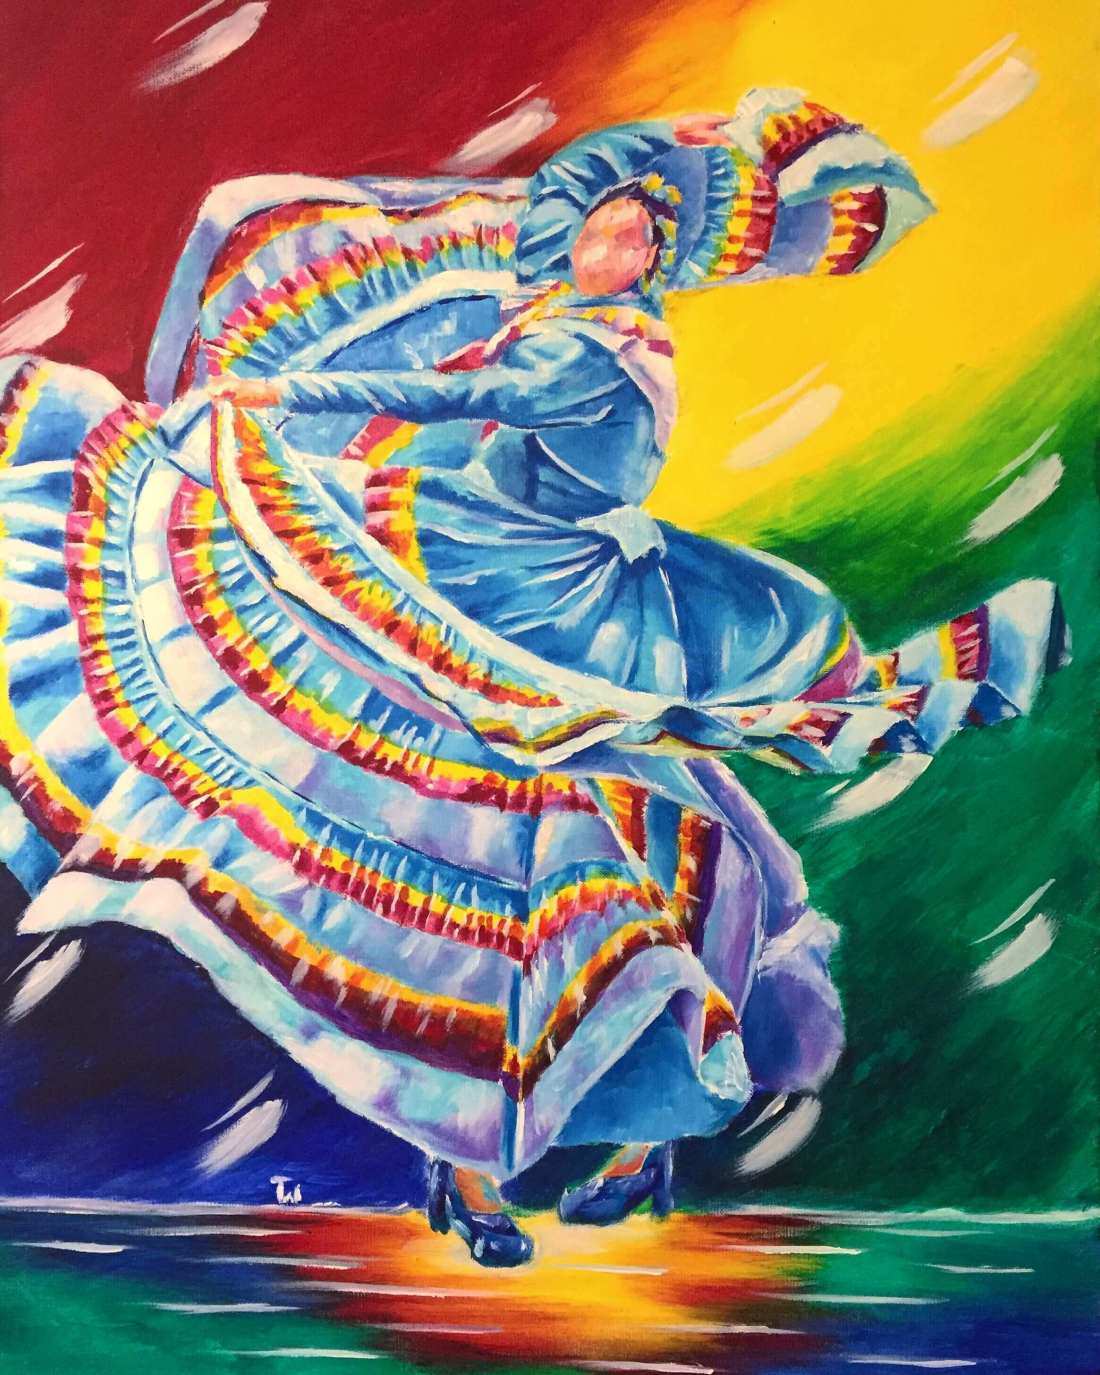 Impressionistic Painting of Folklorico Dancer